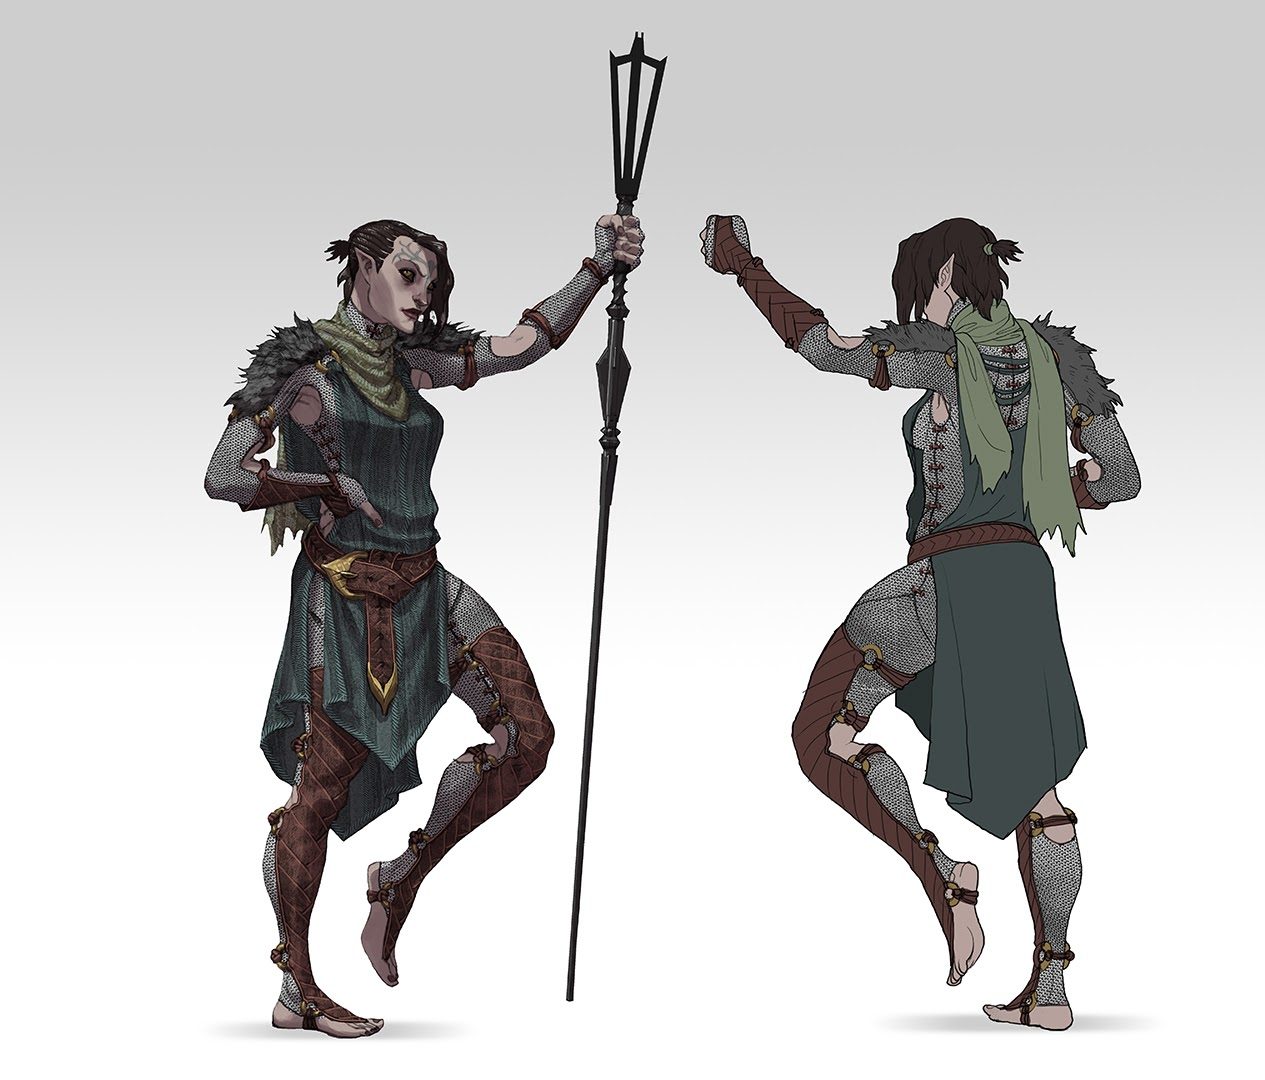 Anders Dragon Age Concept Art Concept art of Merrill for